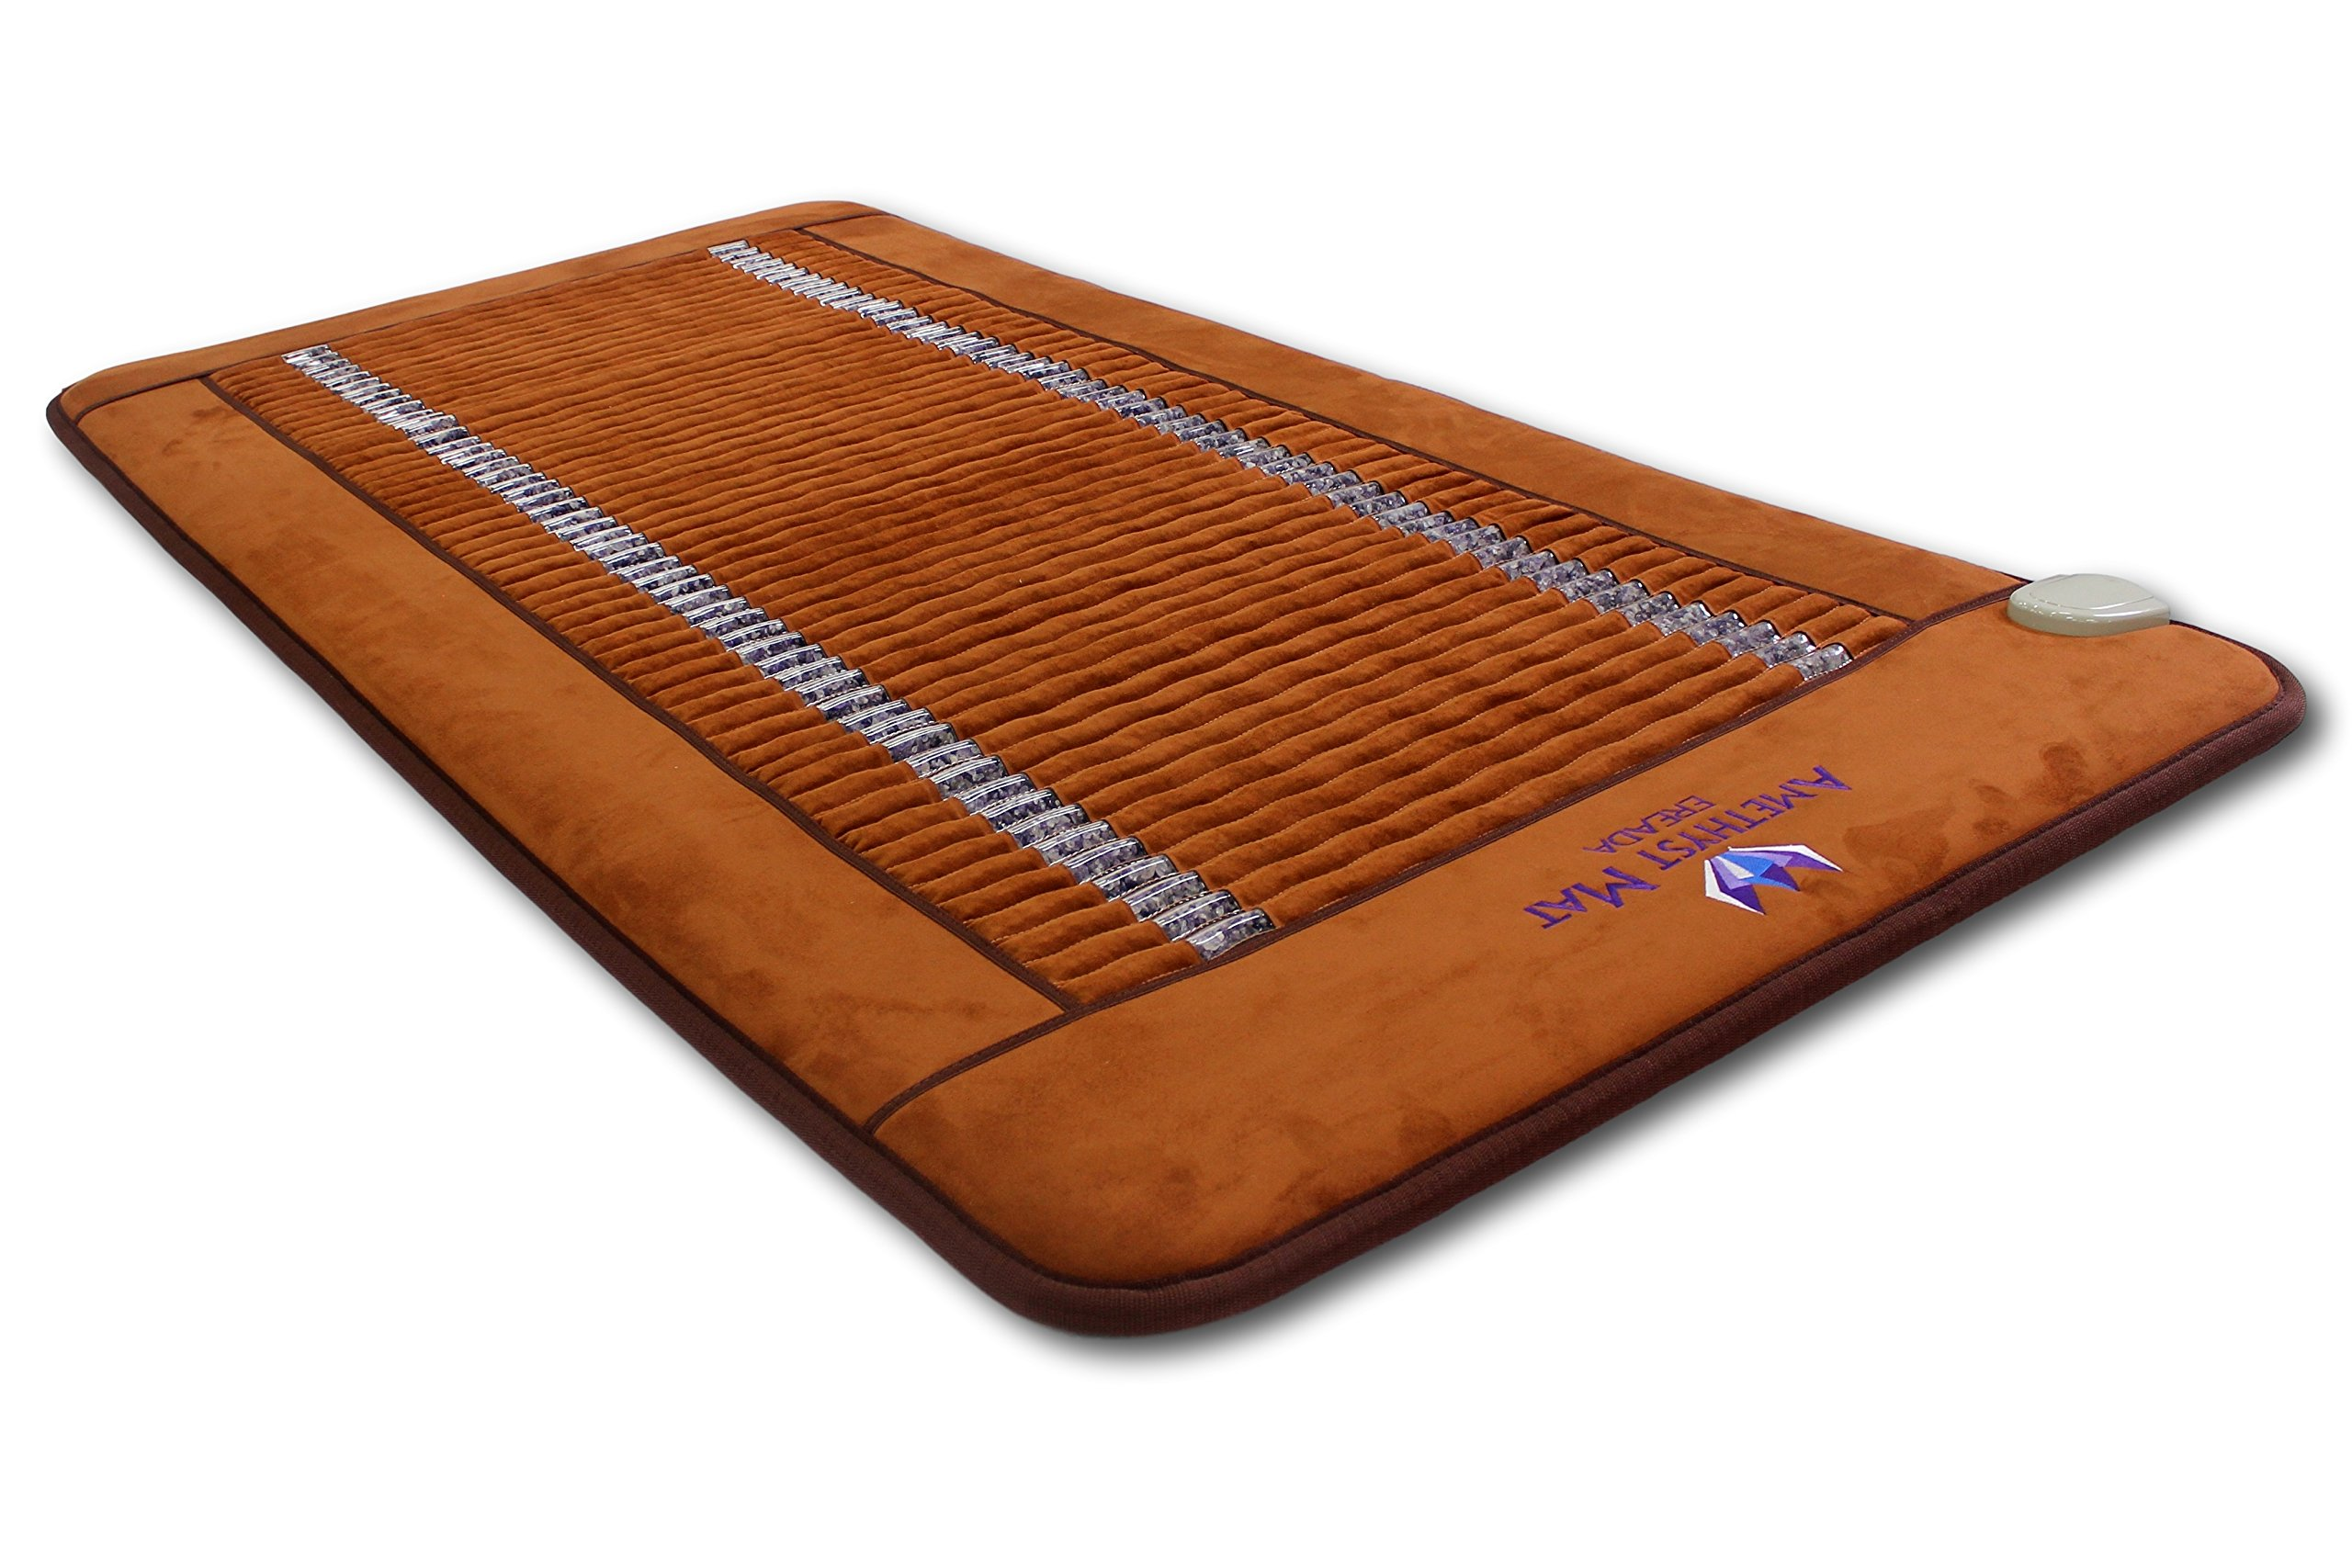 """Far Infrared Amethyst Mat Single Size 75''L x 39""""W - Made in Korea - Deep Penetration FIR Heat - Ion Therapy - Jewelry Grade Natural Amethyst - FDA Registered Manufacturer- XL Heating Pad with Crystals"""